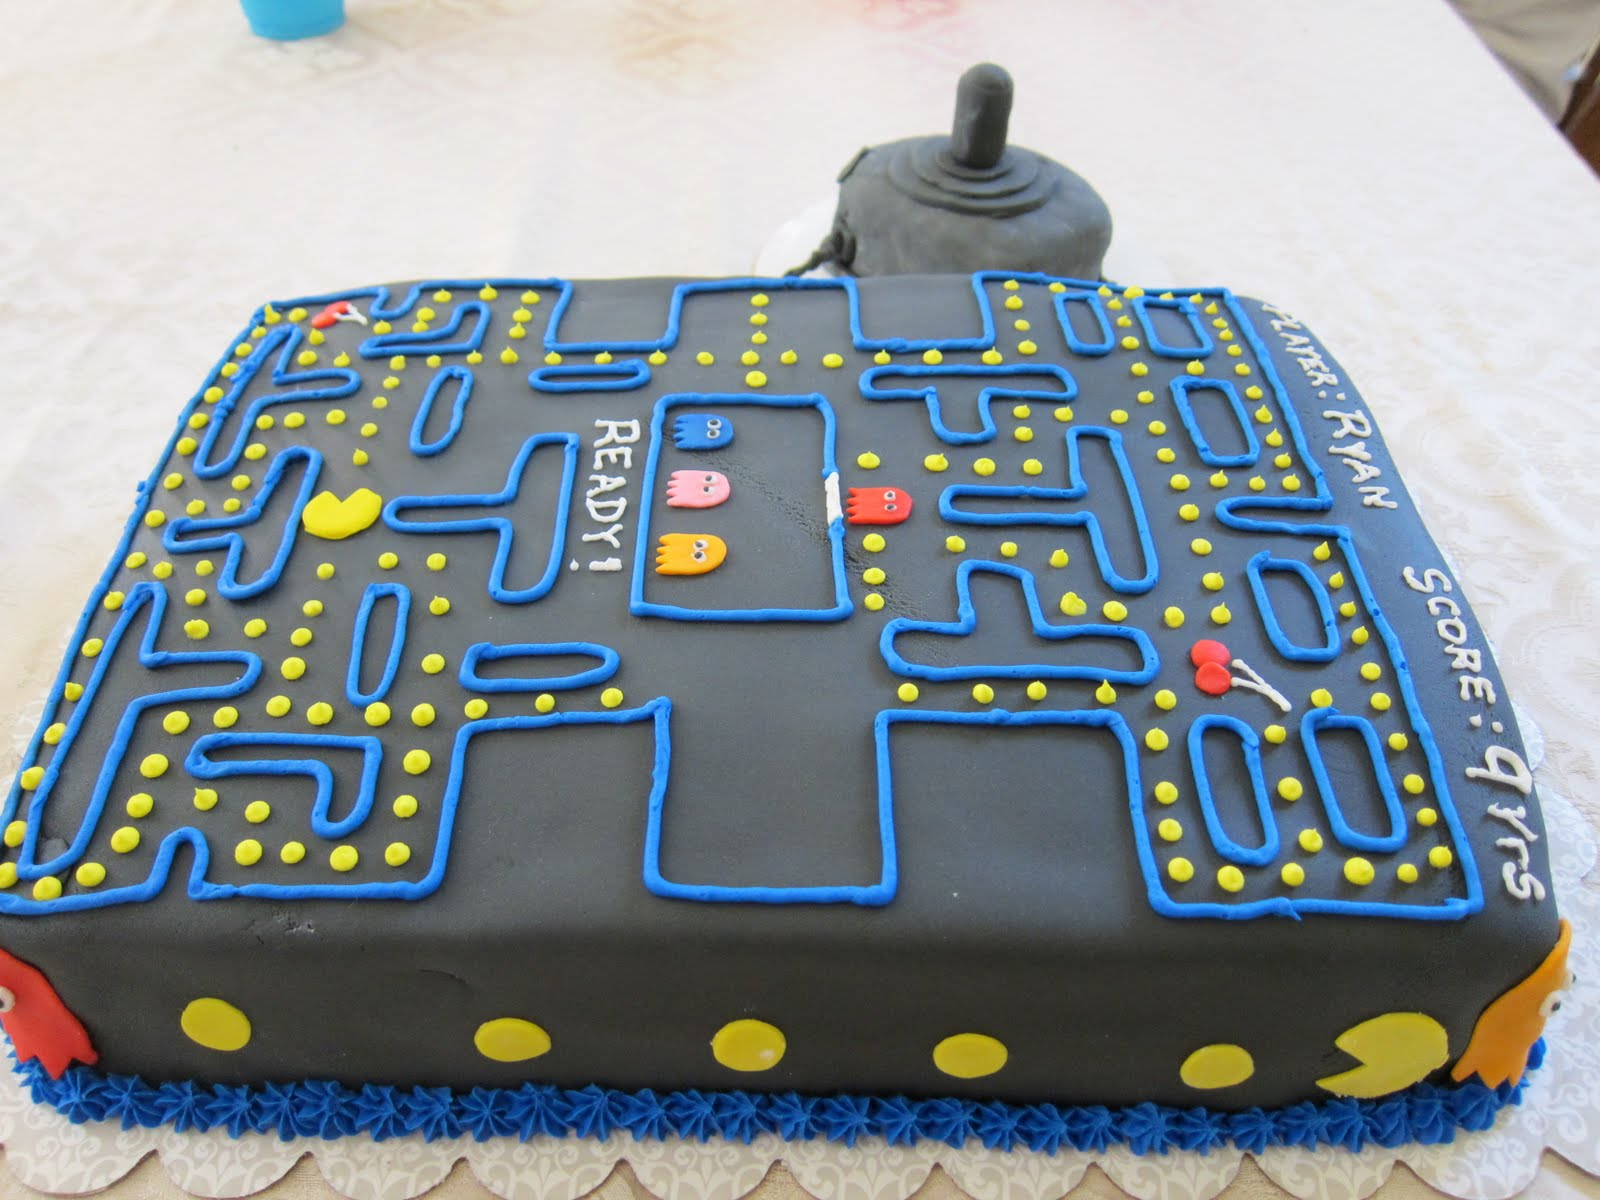 10 Ultimate Geek Cakes You Would Love To Eat